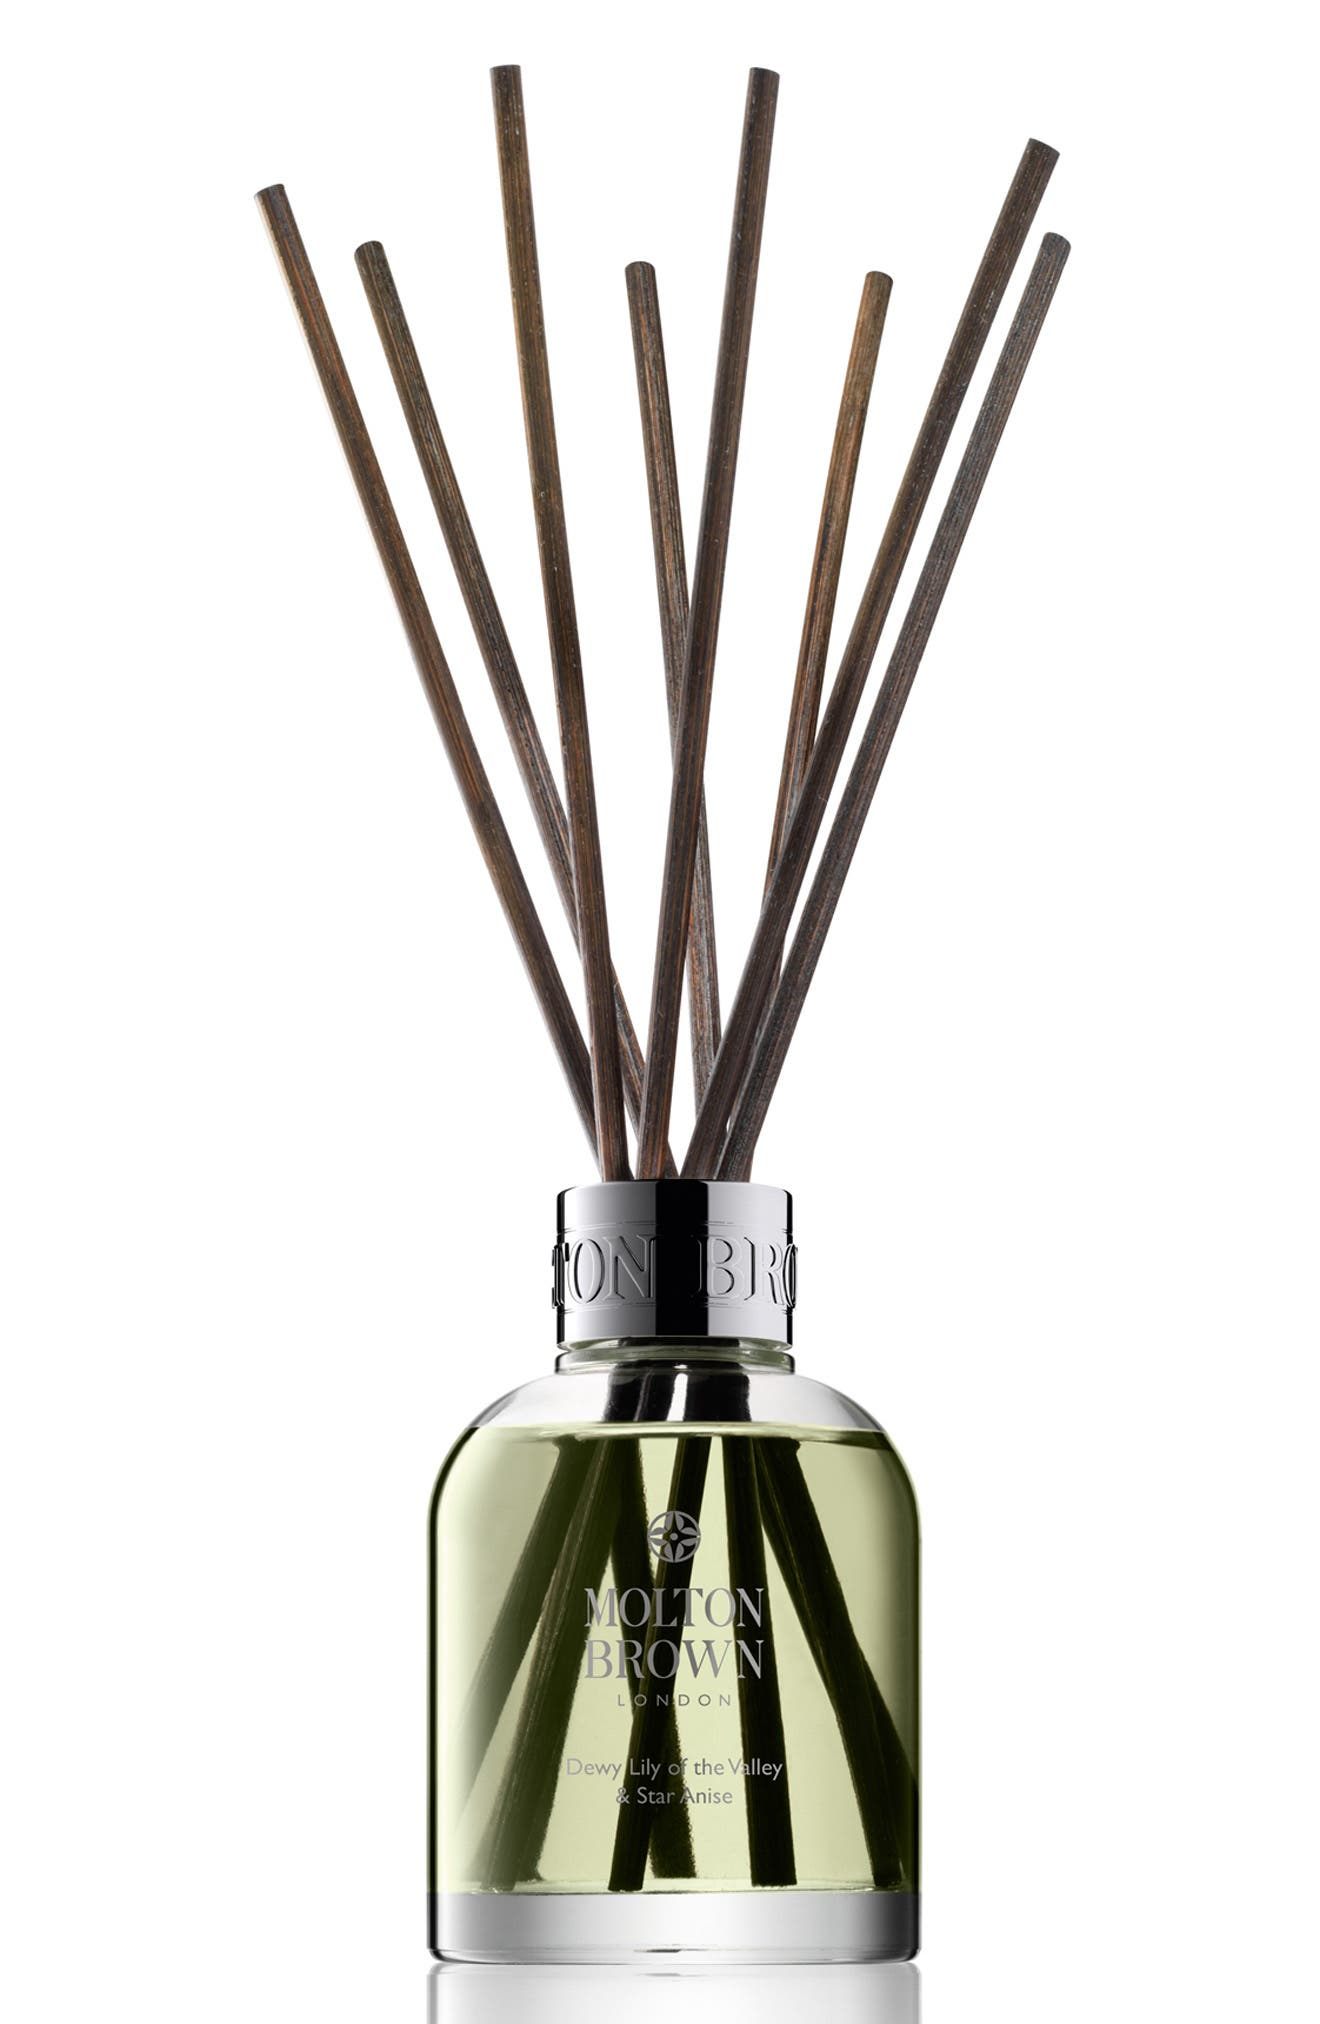 'Dewy Lily of the Valley & Star Anise' Aroma Reeds,                             Main thumbnail 1, color,                             100